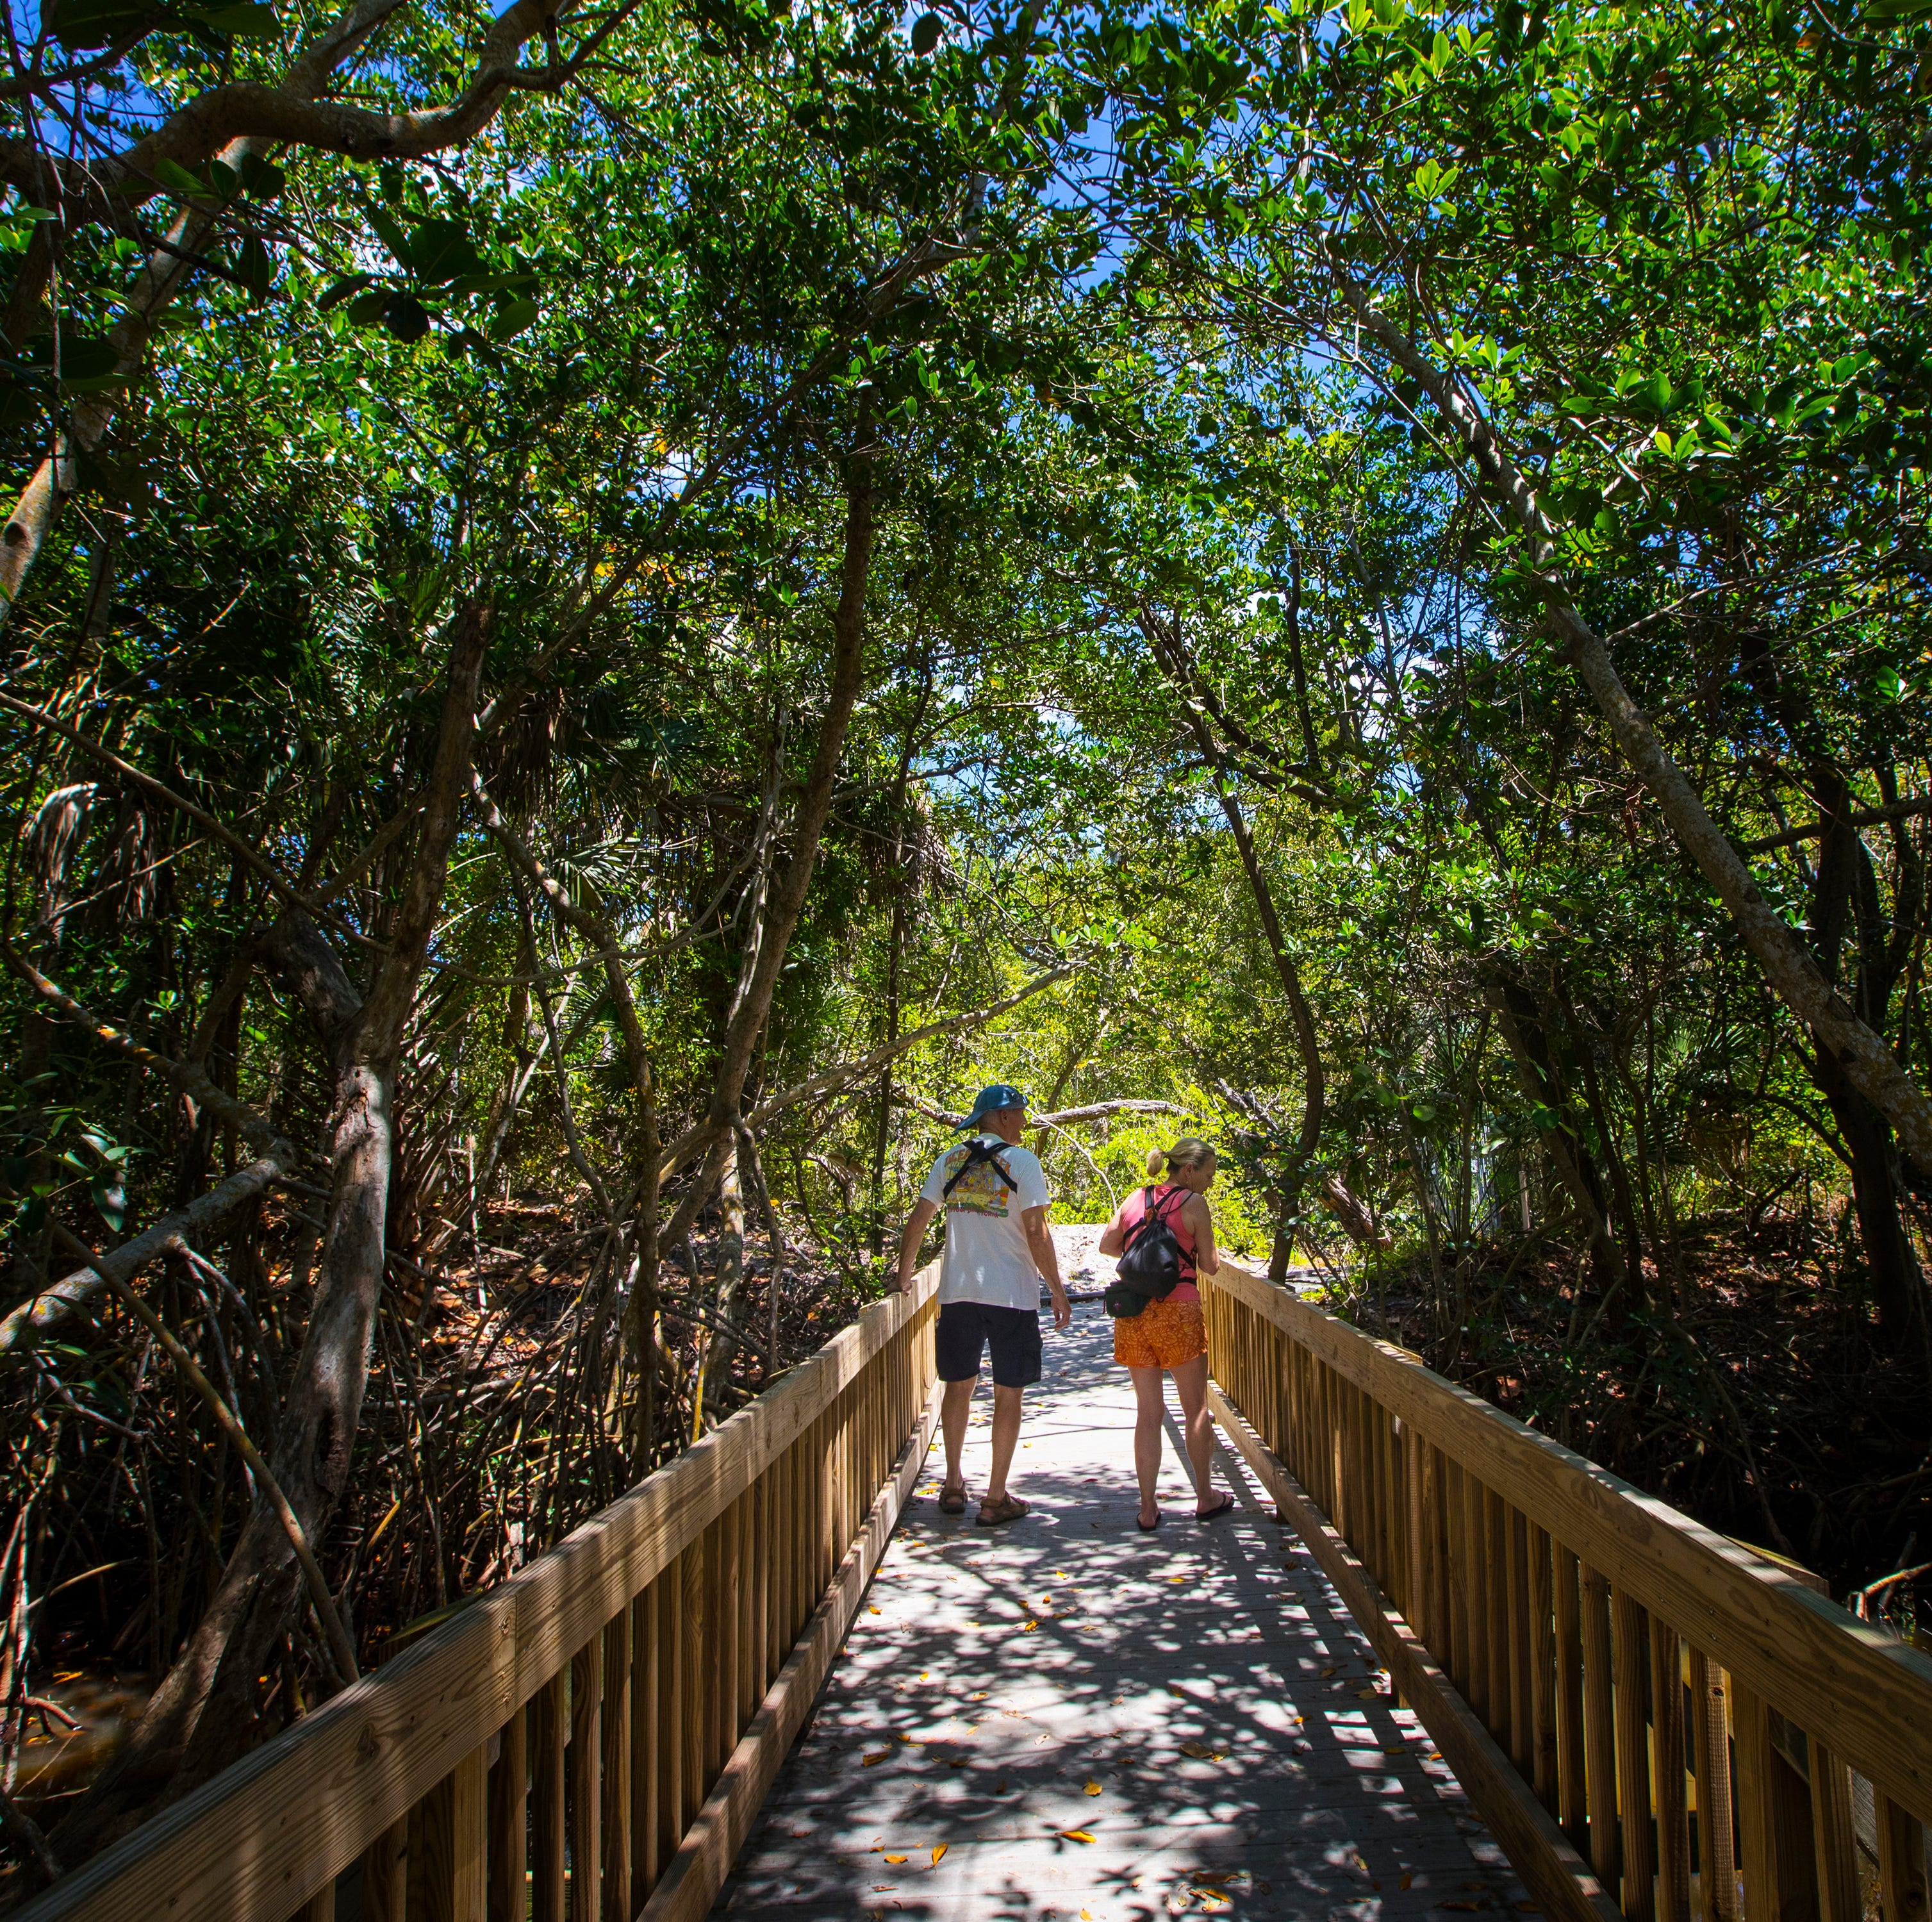 Matanzas Pass Preserve, Fort Myers Beach's 'hidden gem' gets $1.1 million in improvements